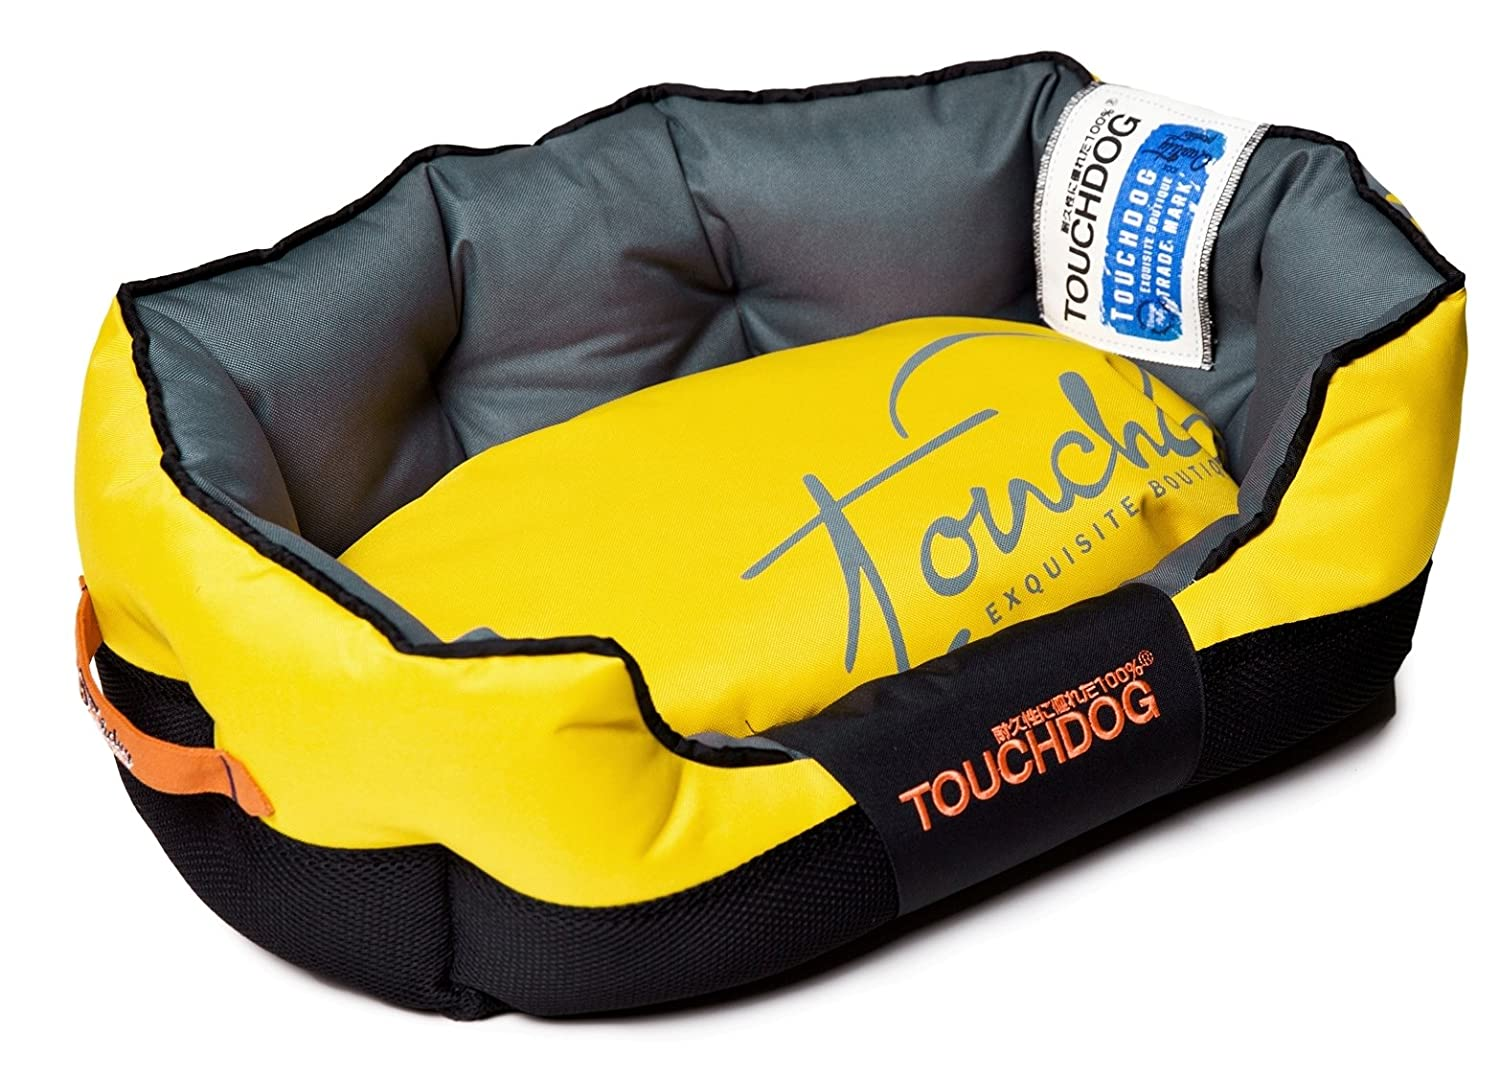 Sporty Yellow, Black MD Sporty Yellow, Black MD TOUCHDOG 'Performance-Max' Sporty Comfort Cushioned Reflective Water-Resistant Fashion Pet Dog Bed Mat, Medium, Sporty Yellow, Black